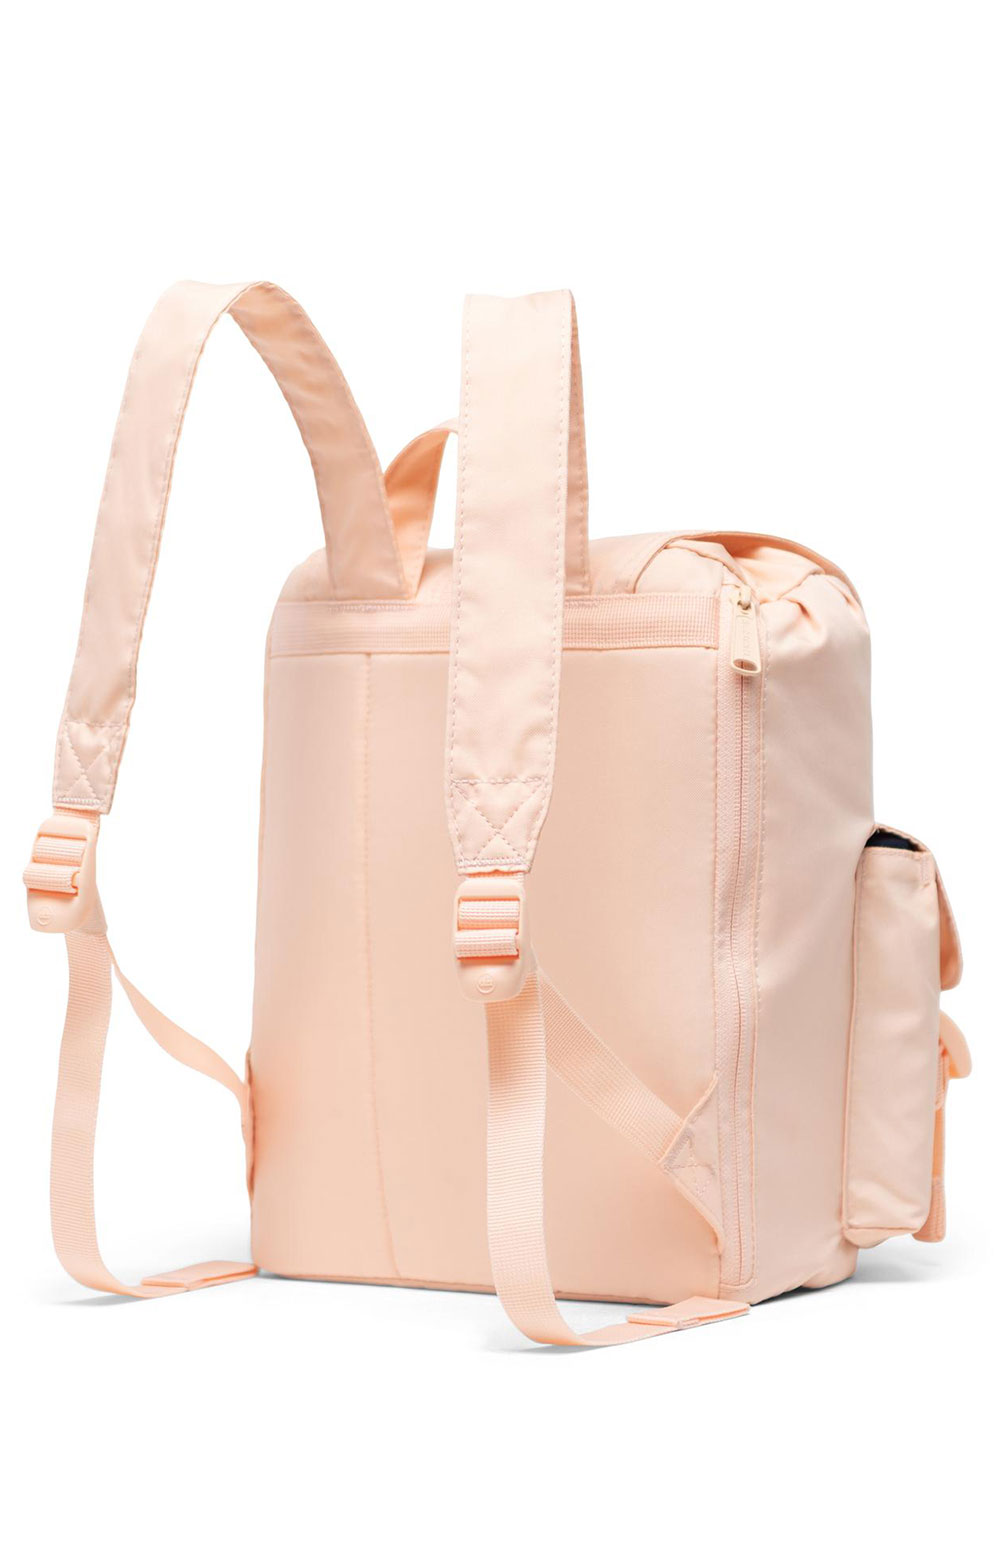 Dawson Backpack Light - Apricot Pastel 4